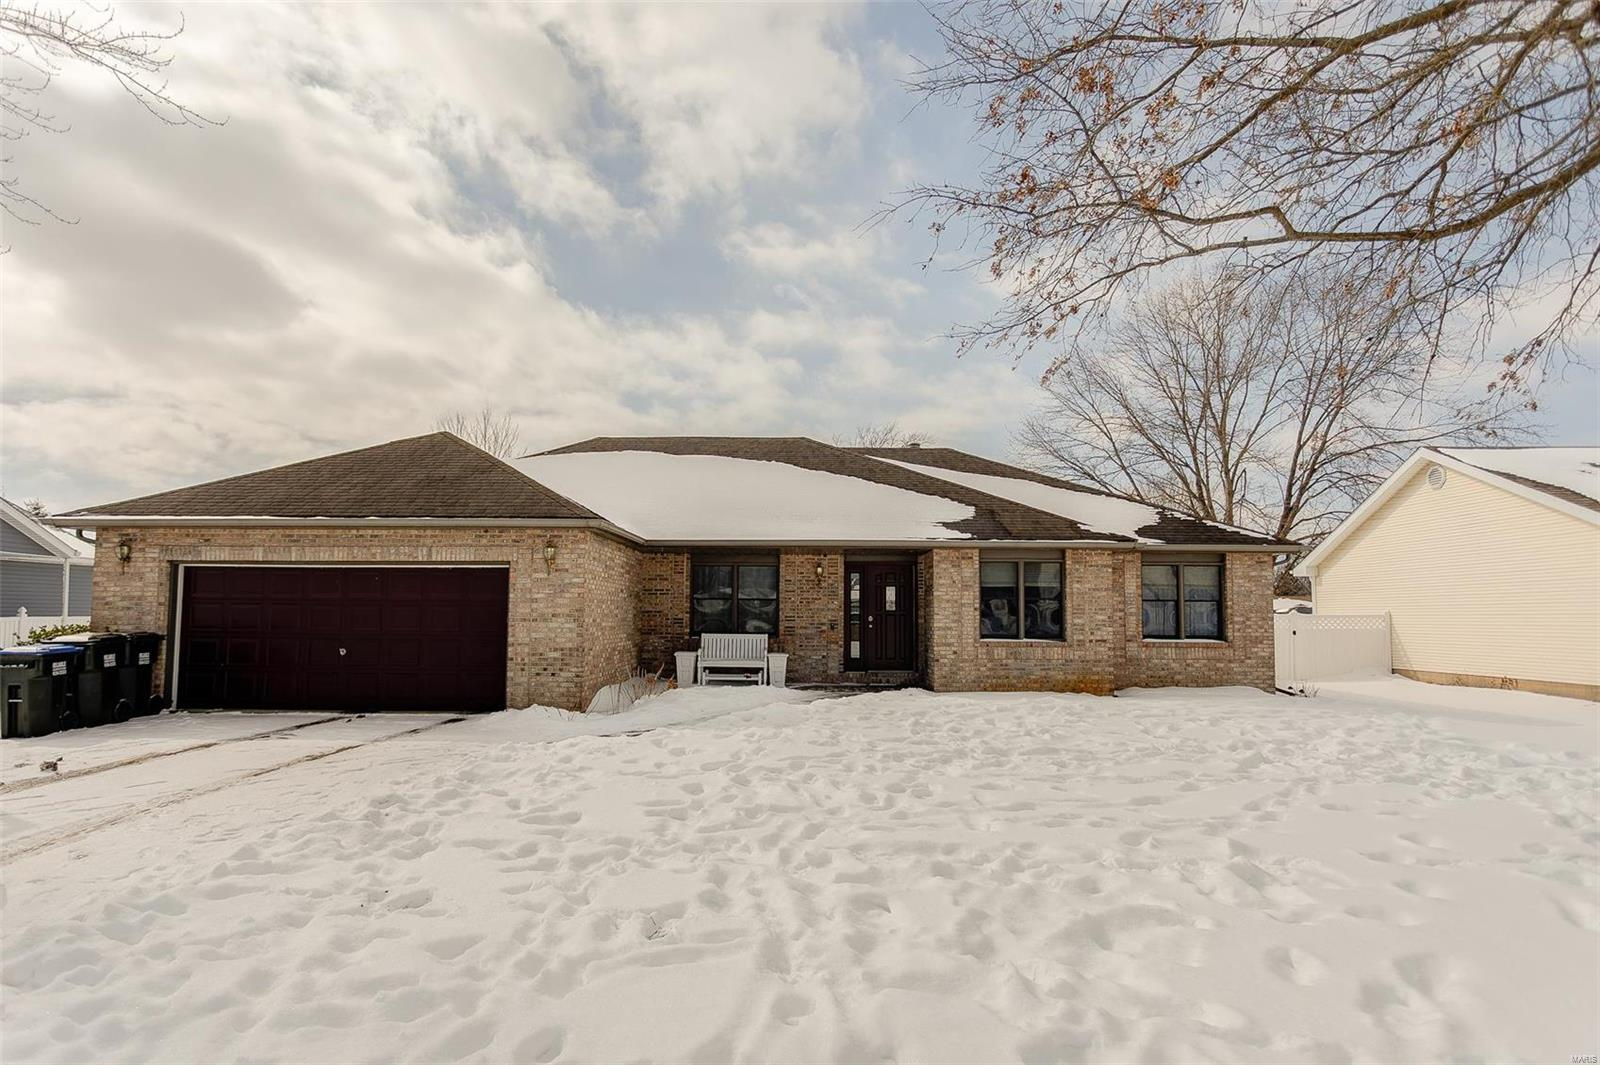 613 Marian Drive Property Photo - Dupo, IL real estate listing